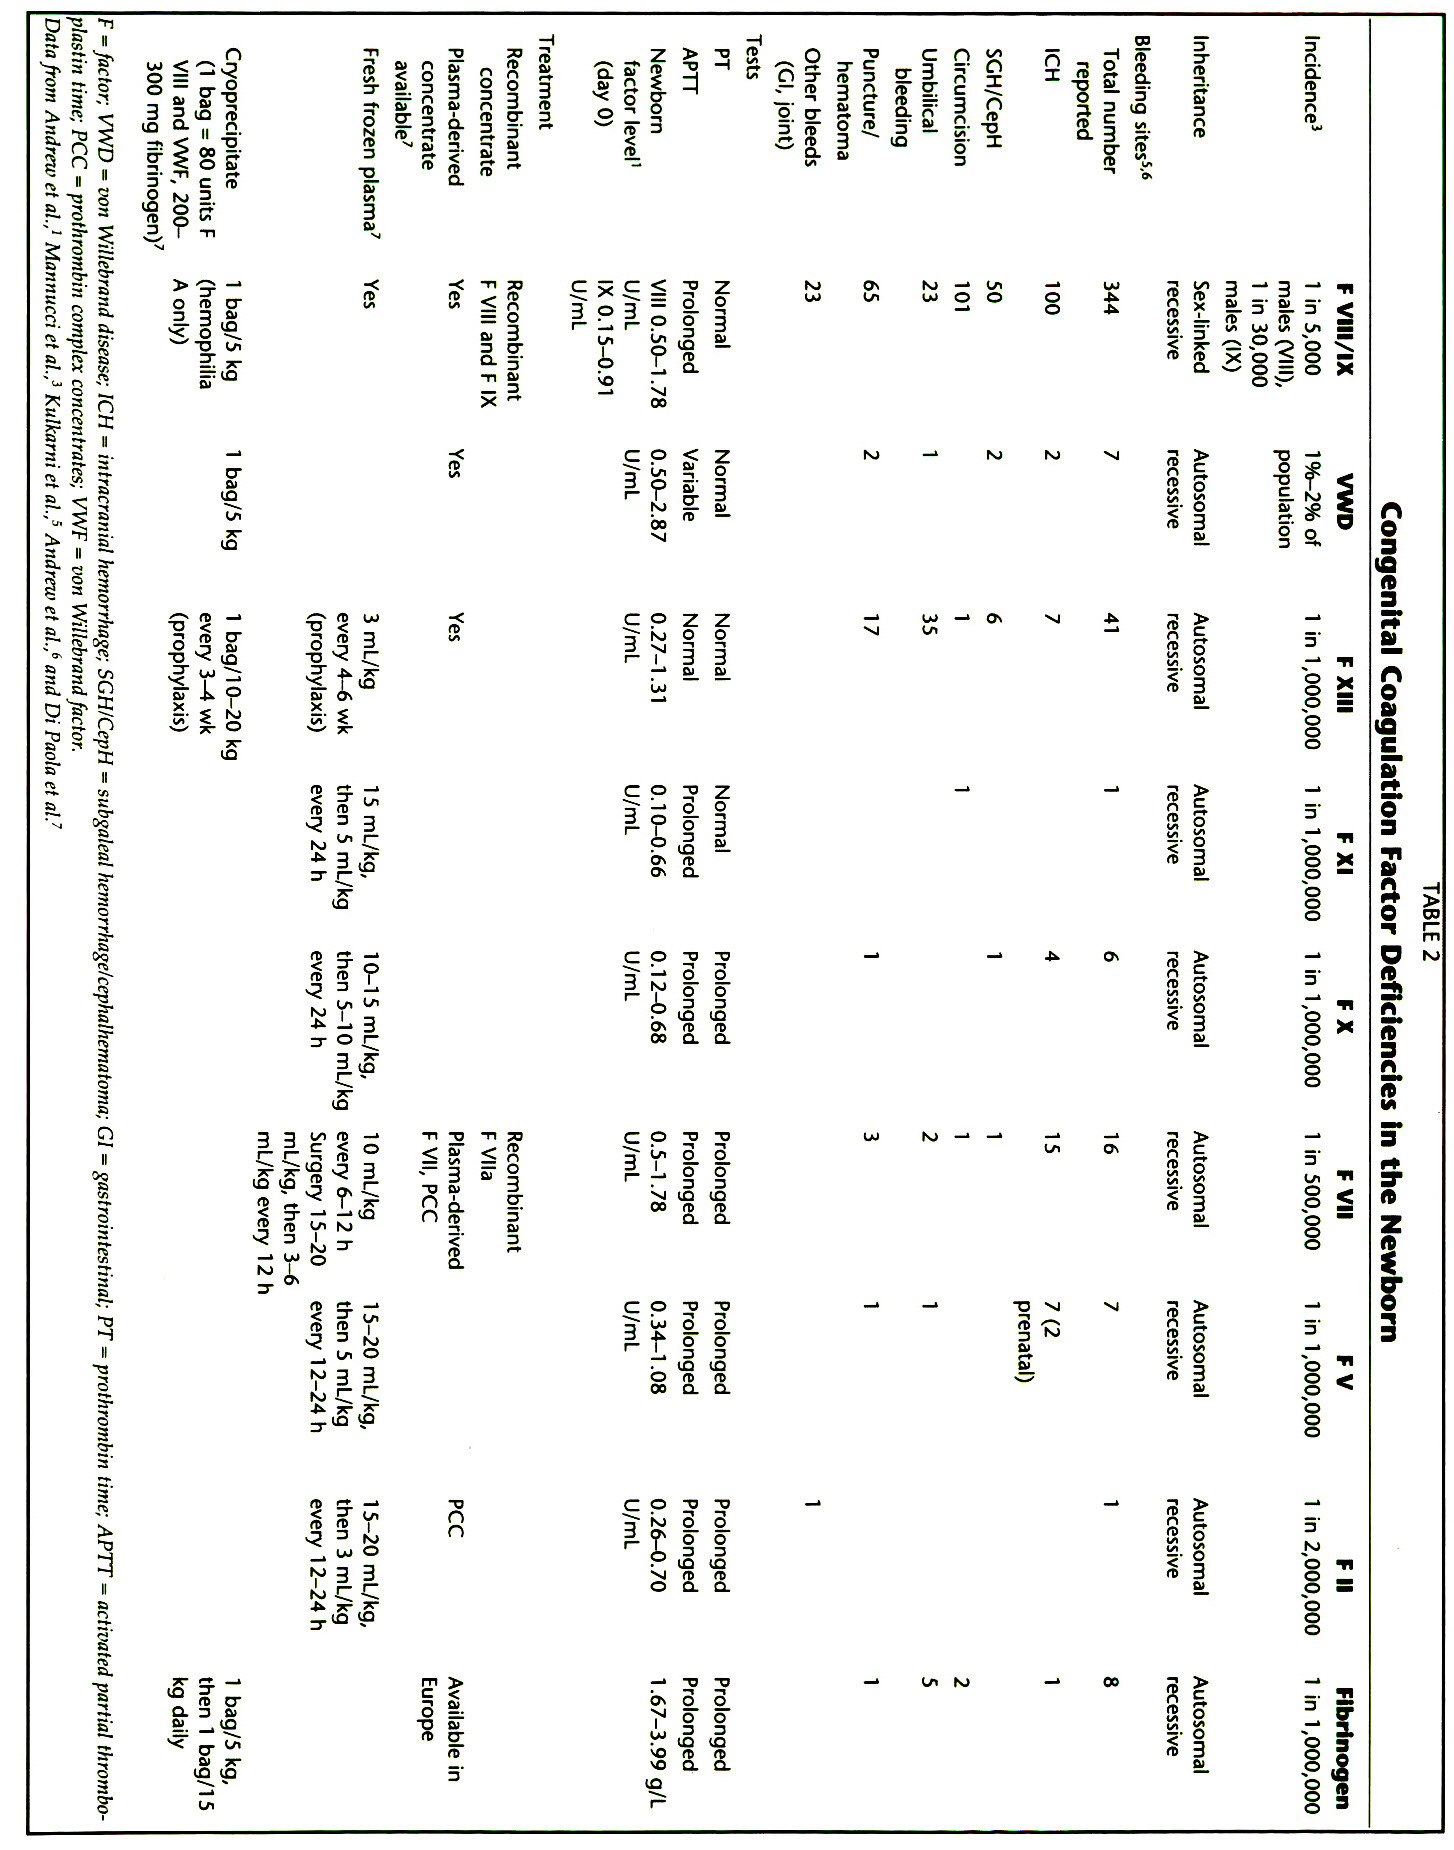 TABLE 2Congenital Coagulation Factor Deficiencies in the Newborn